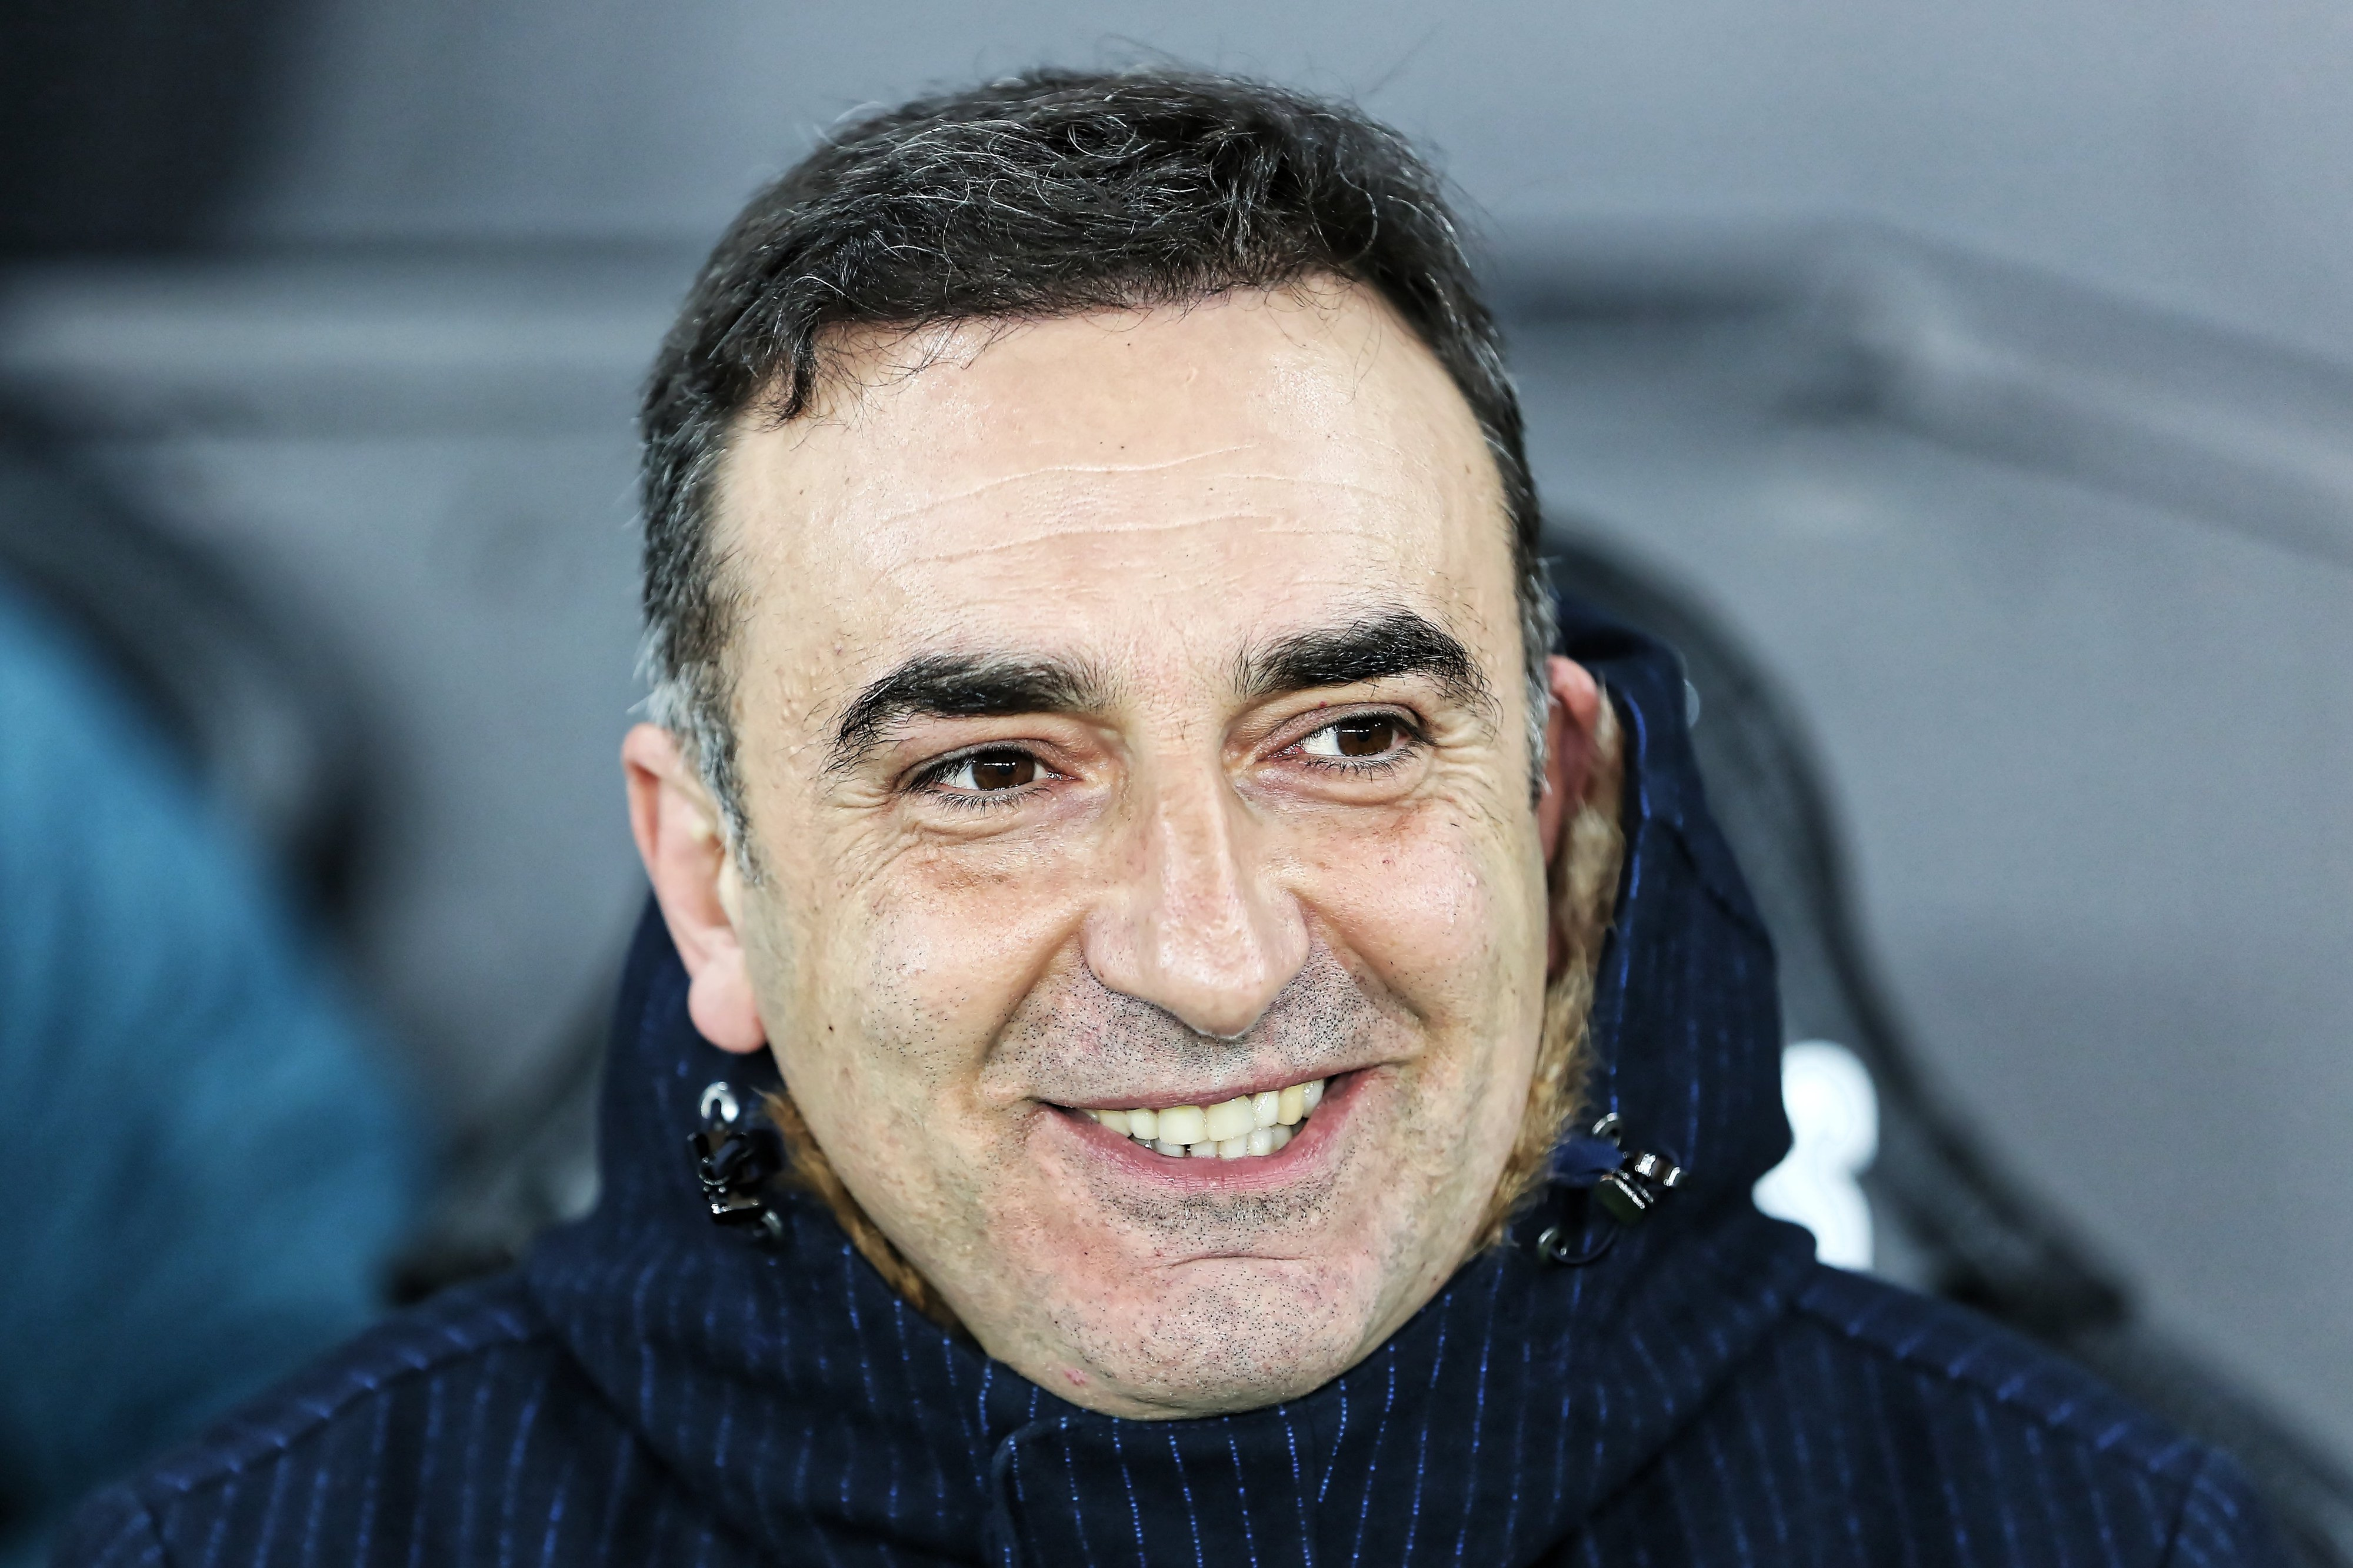 Premier League: Carlos Carvalhal, The Portuguese One